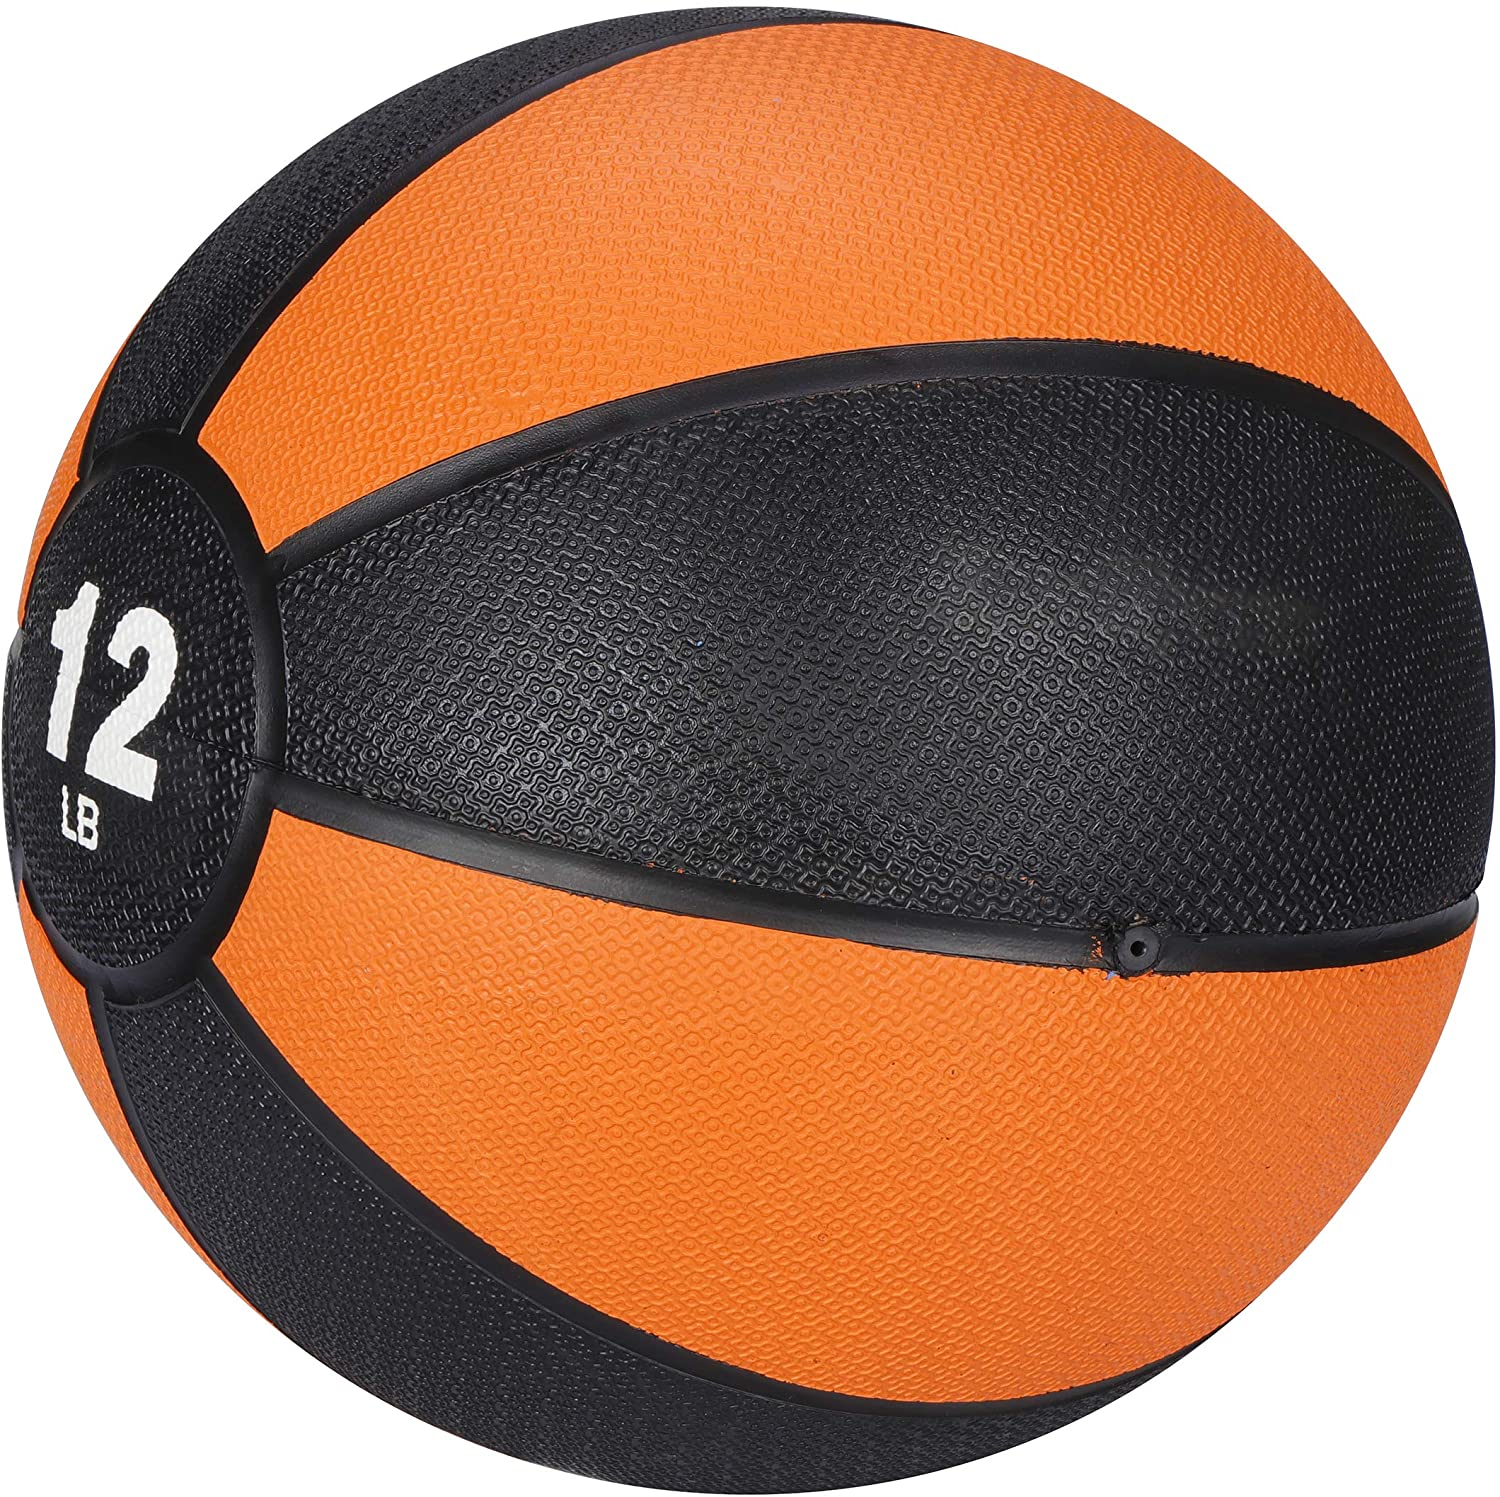 Epetlover Medicine Ball Exercise Weighted Regular discount Workout Fitness Max 59% OFF Balls